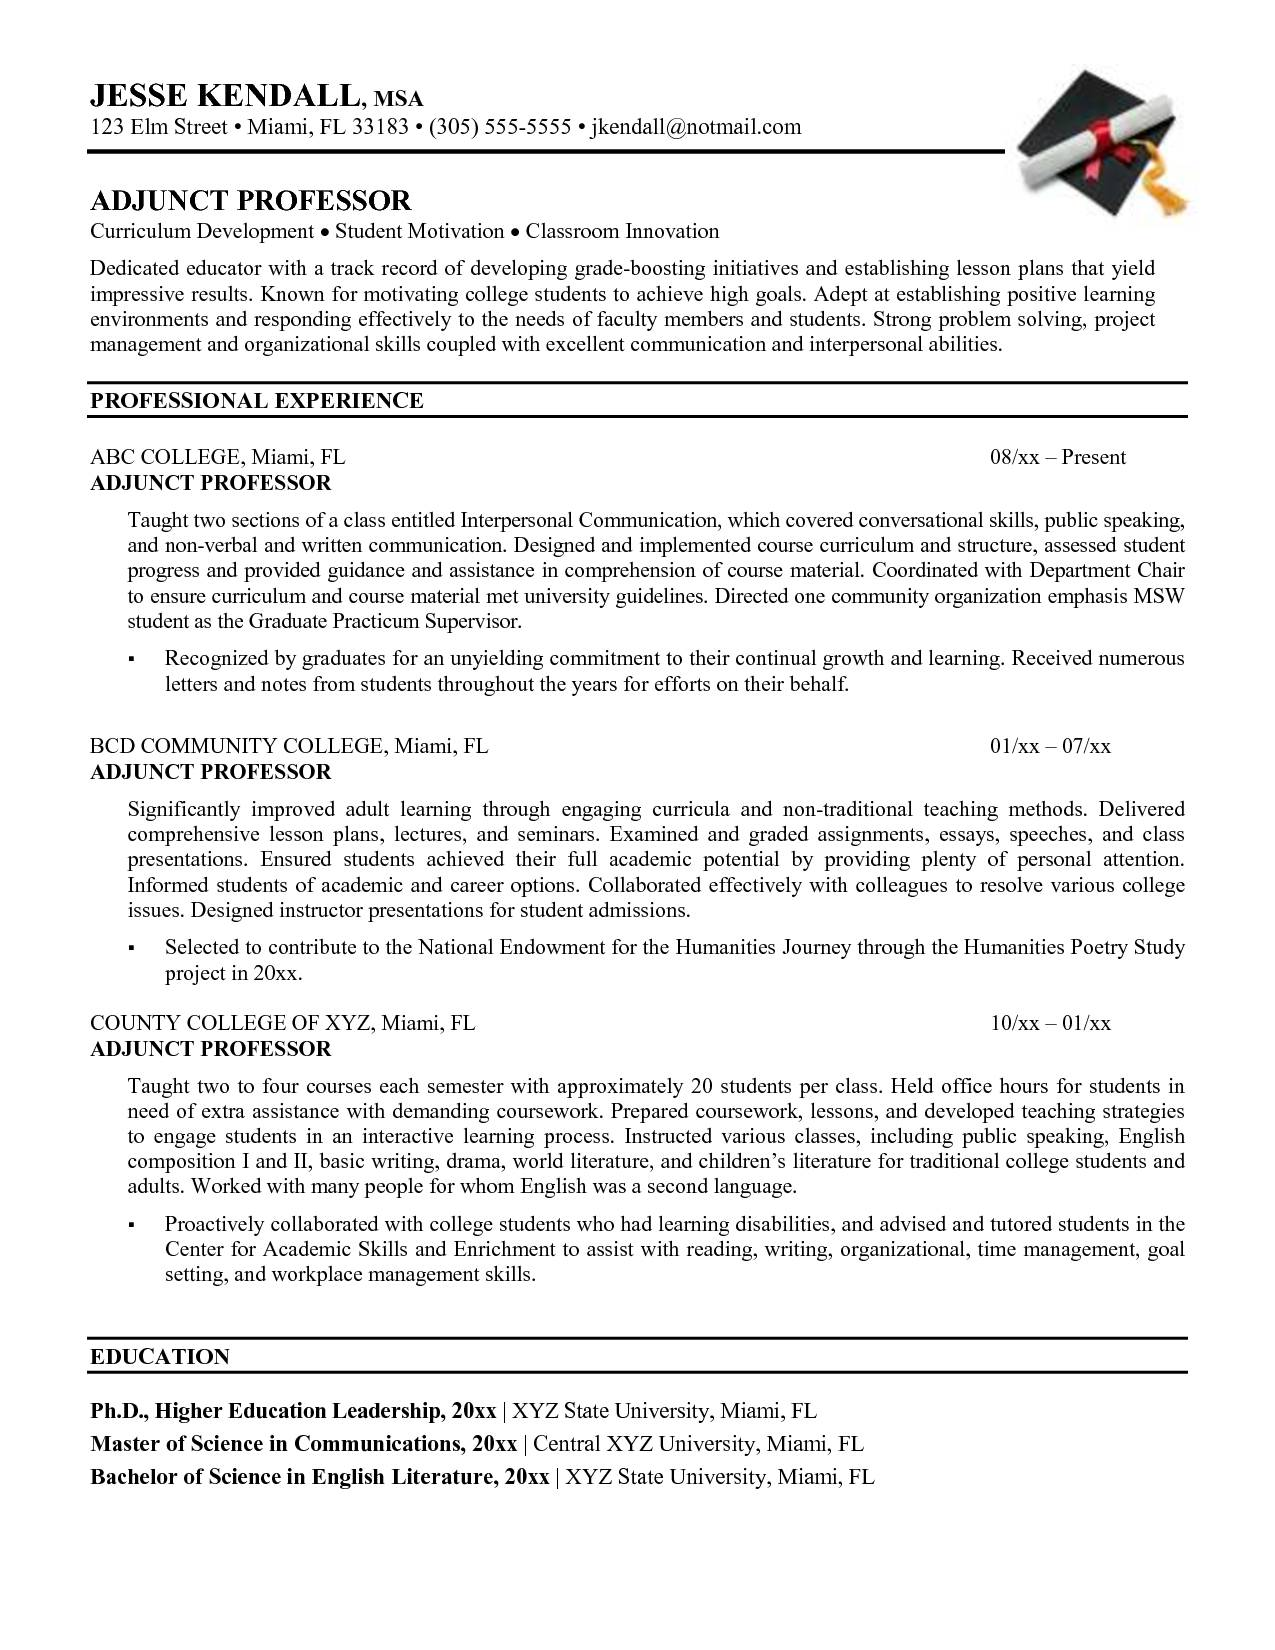 Template For A Curriculum Vitae